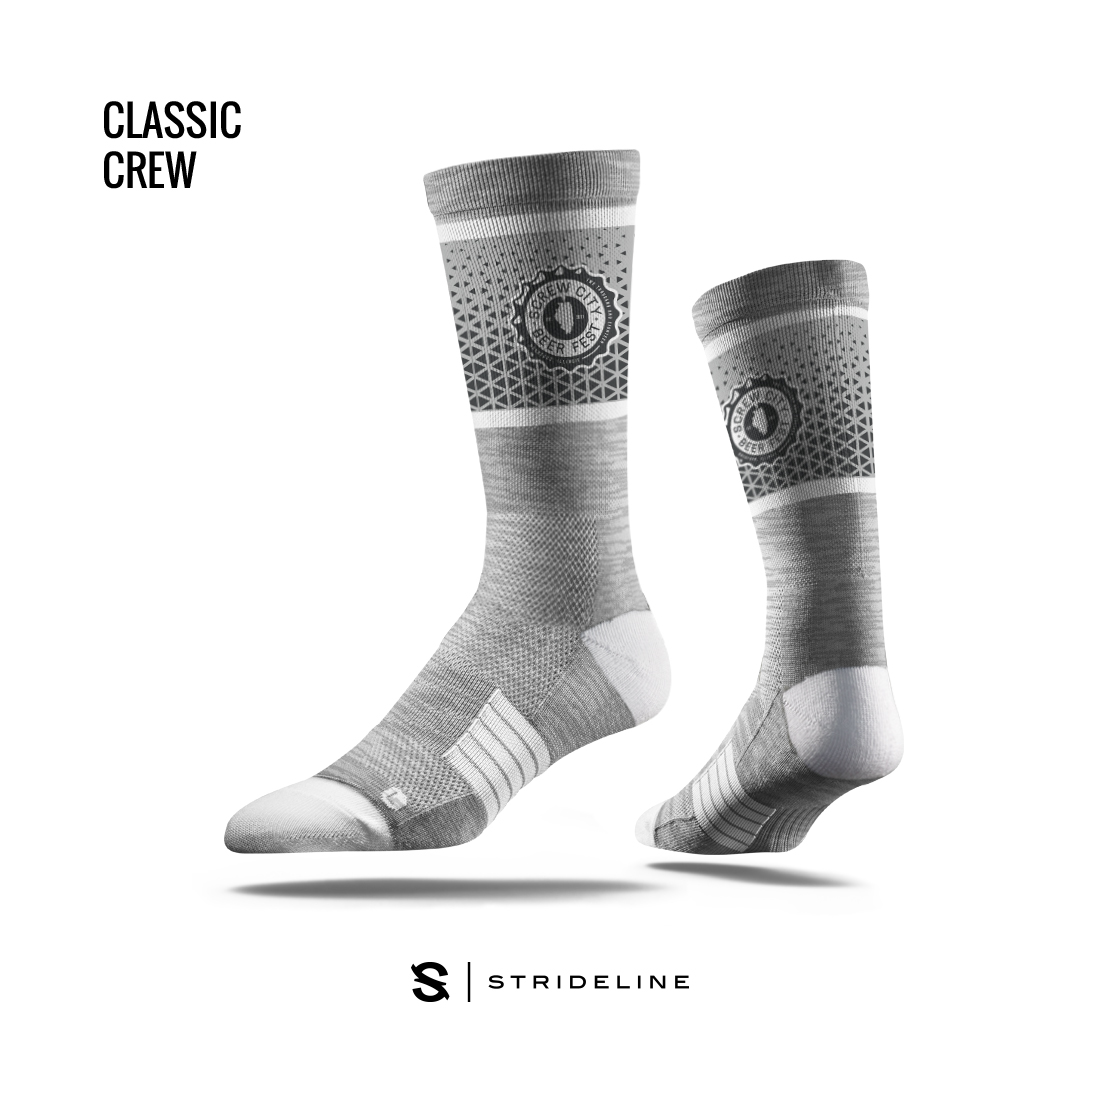 Our Branding Gear can knock your socks off….